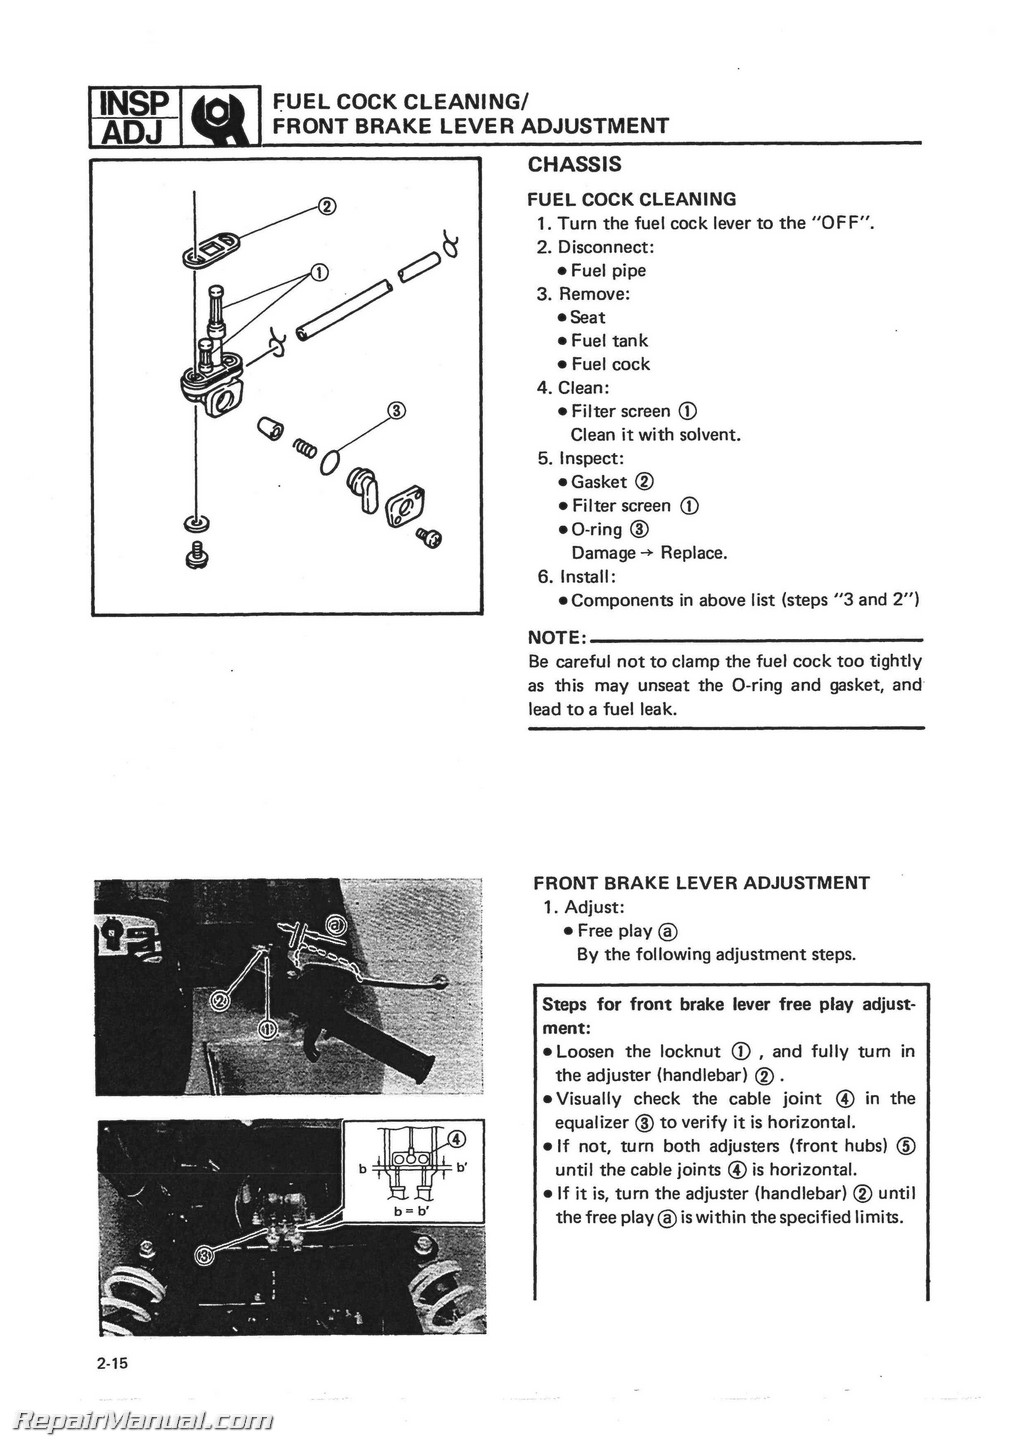 Moto 4 Schematic Wiring Library. 1986 1988 Yamaha Yfm225 Moto 4 ATV Printed Service Manual Virago 250 Wiring Diagram. Yamaha. Yamaha Moto 4 Yfm 350 Wiring Diagram At Scoala.co